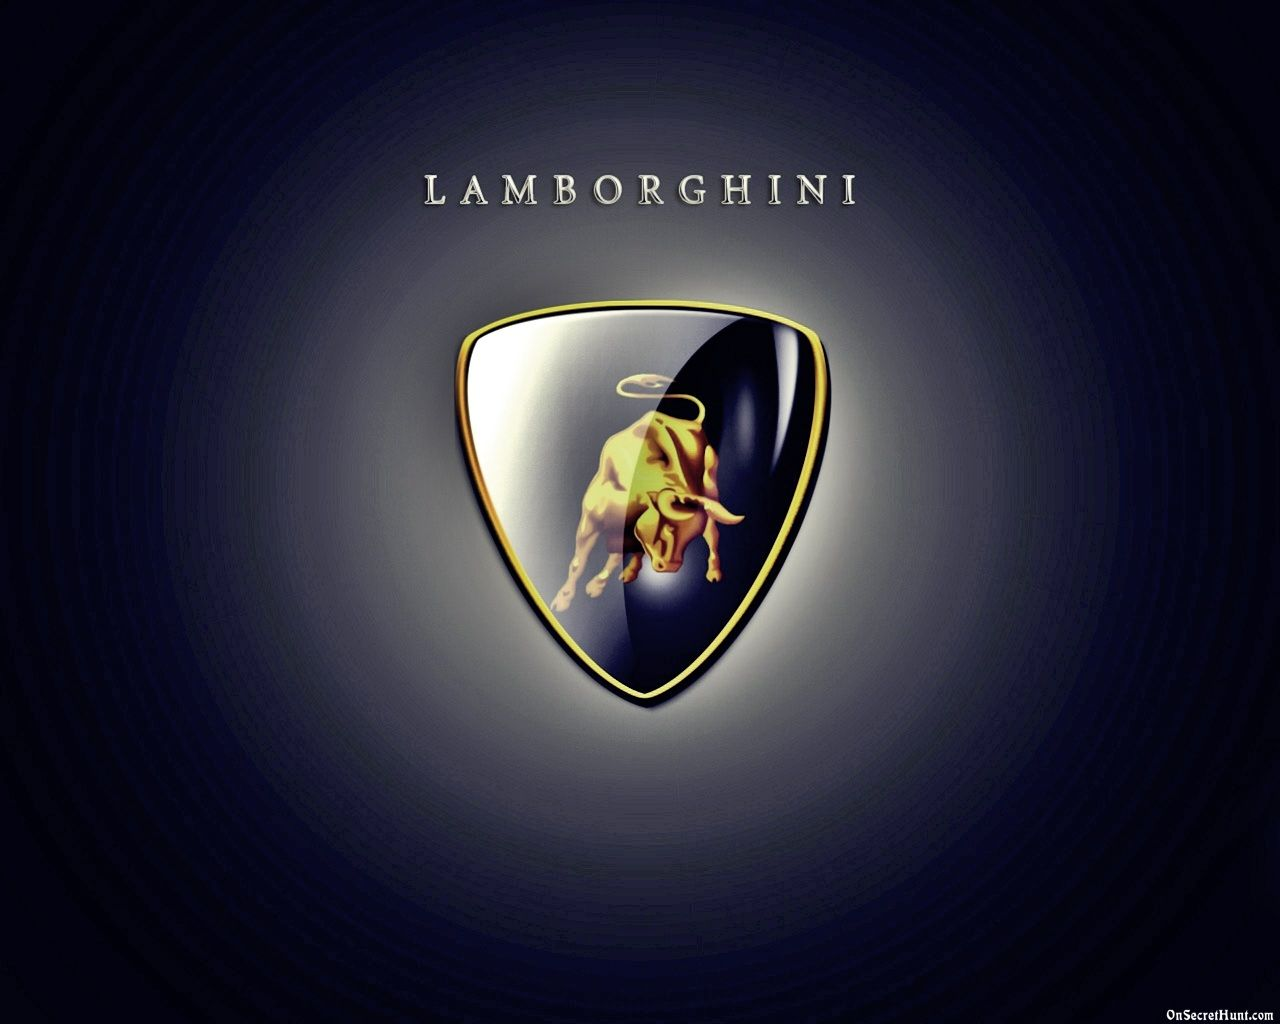 lamborghini aventador wallpaper high quality for background 1280